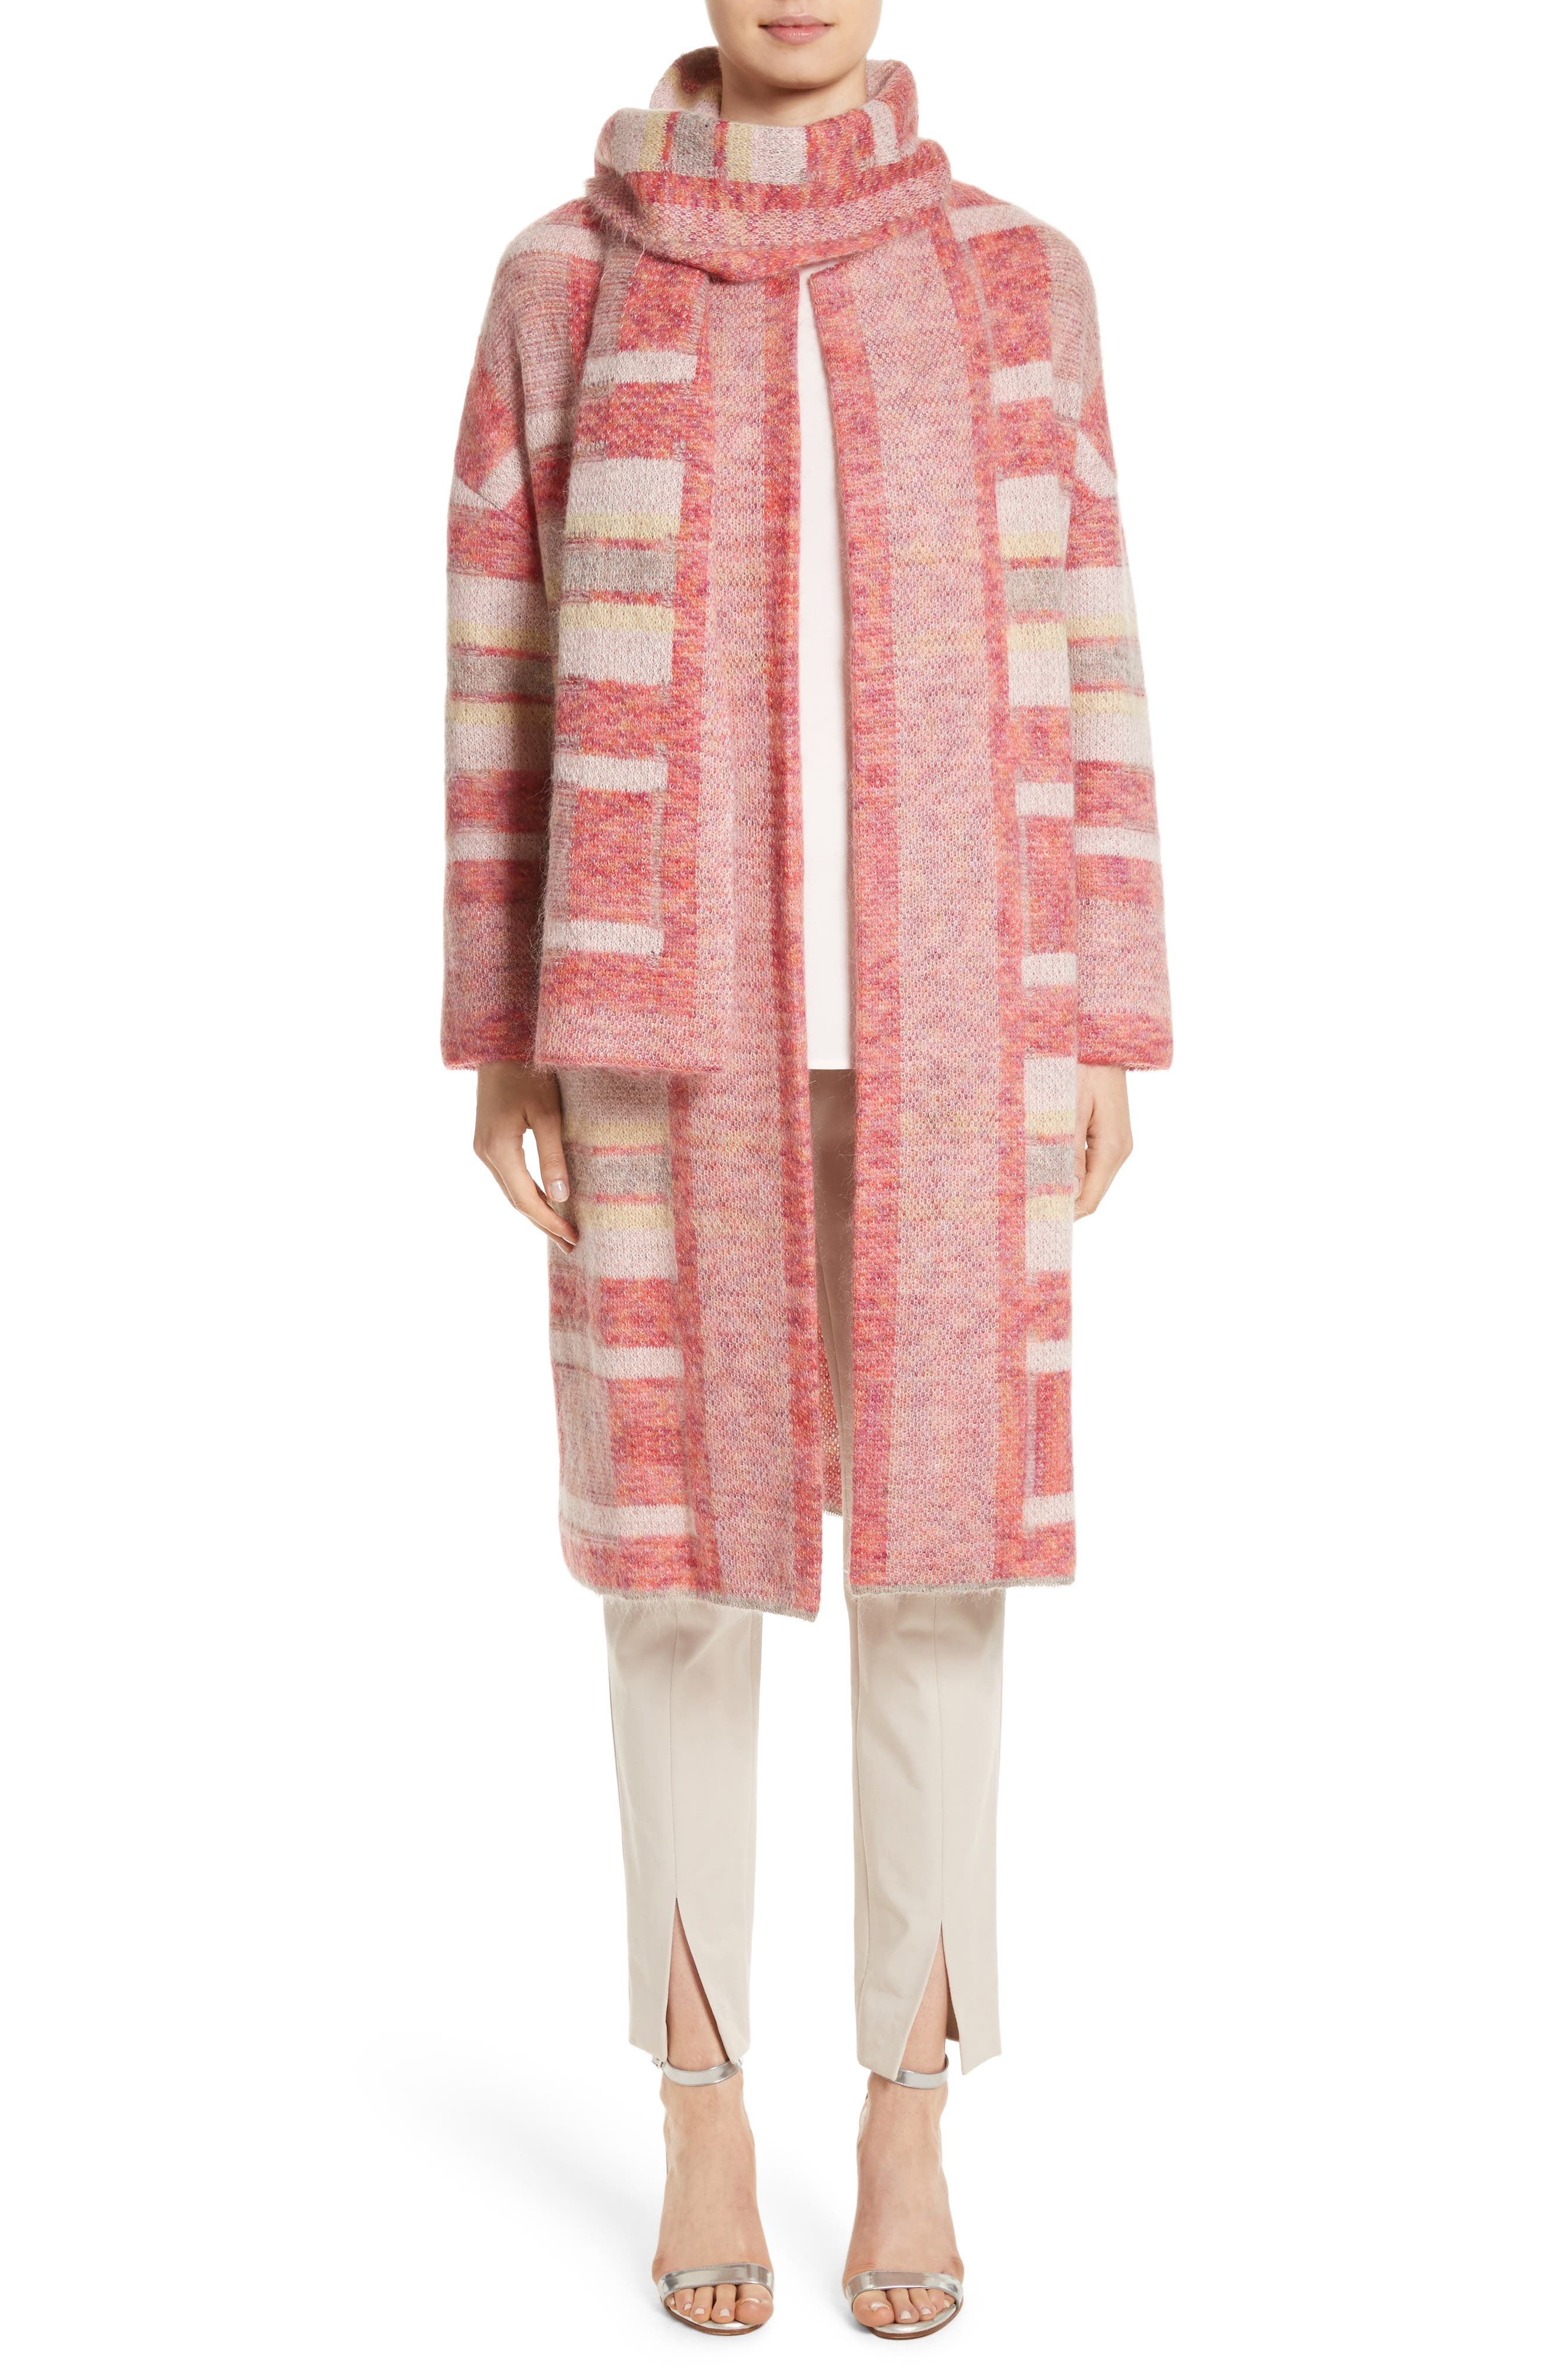 Lofty Knit Plaid Blanket Coat,                             Alternate thumbnail 6, color,                             Bright Coral Multi